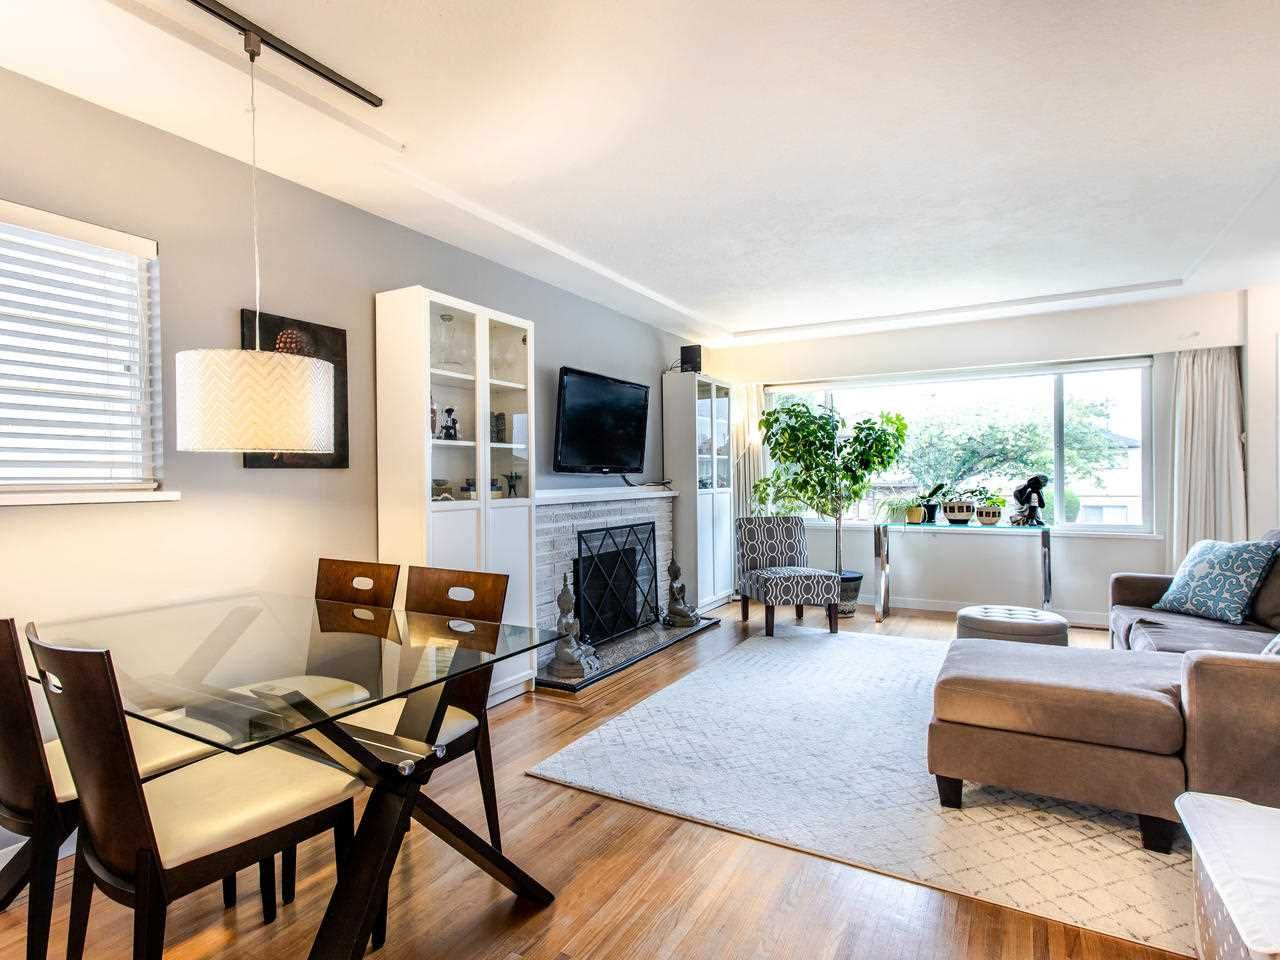 Photo 3: Photos: 4653 UNION STREET in Burnaby: Capitol Hill BN House for sale (Burnaby North)  : MLS®# R2493161